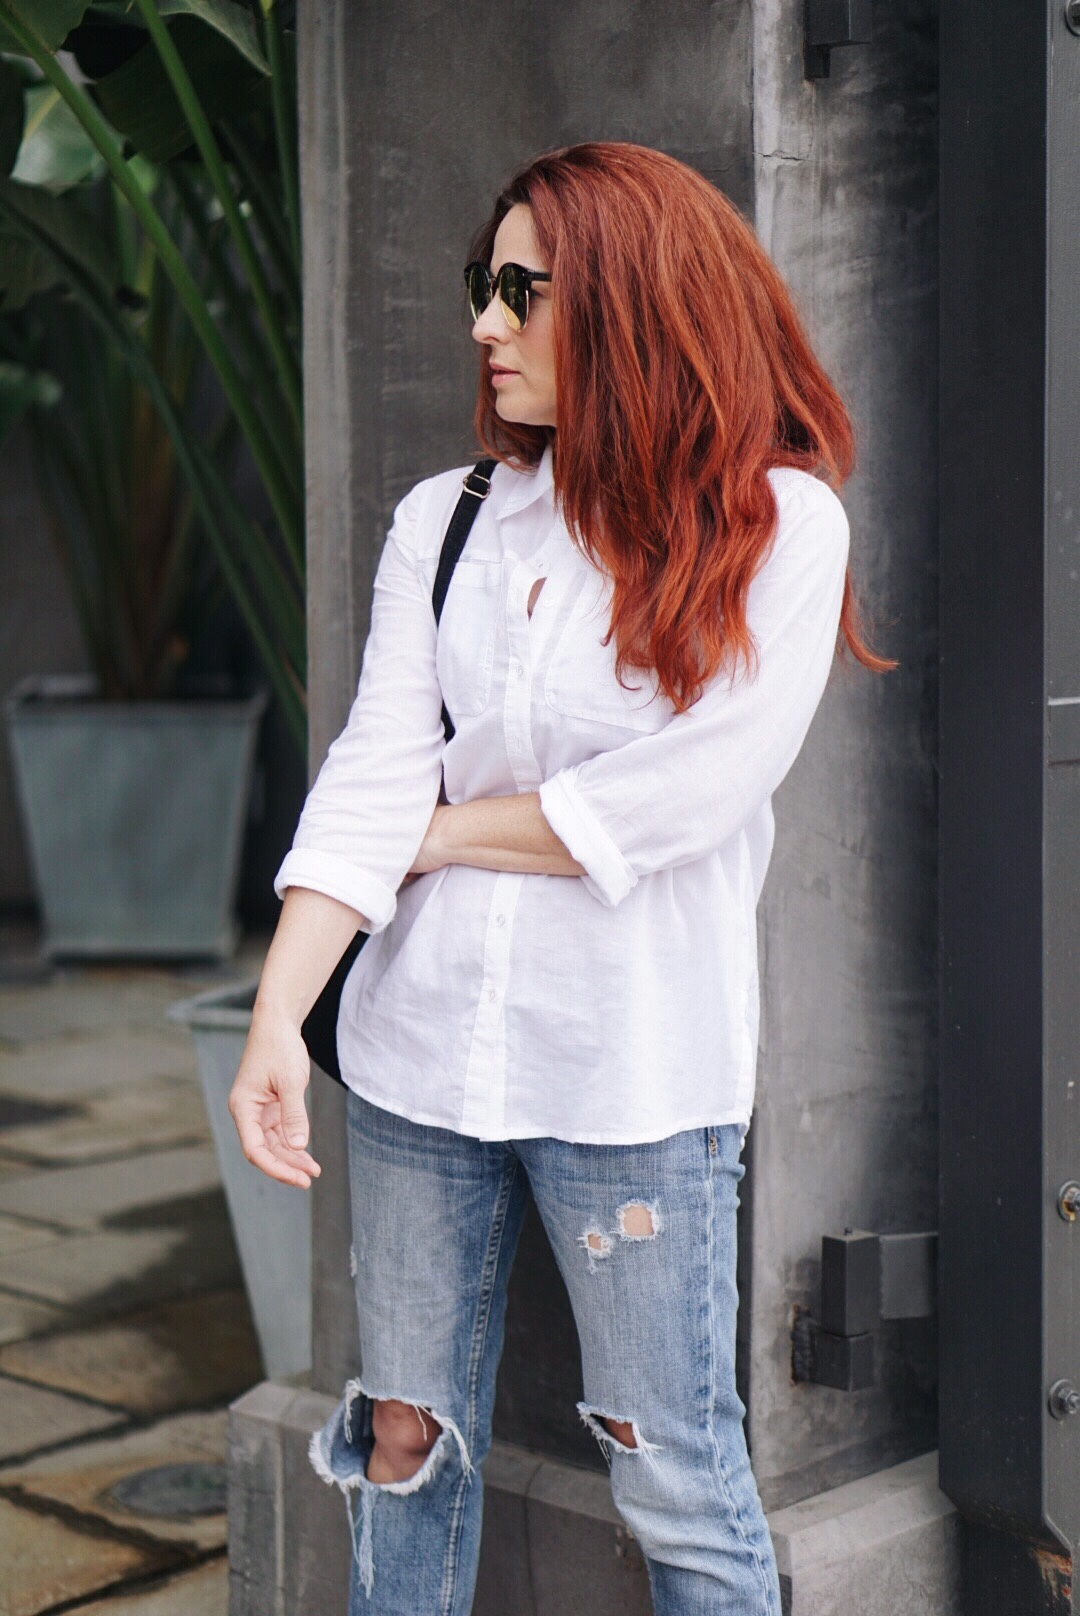 casual style, wardrobe basic outfits, I don't know what to wear, I'm bored with my clothes, white shirt, boyfriend jeans, red hair inspiration